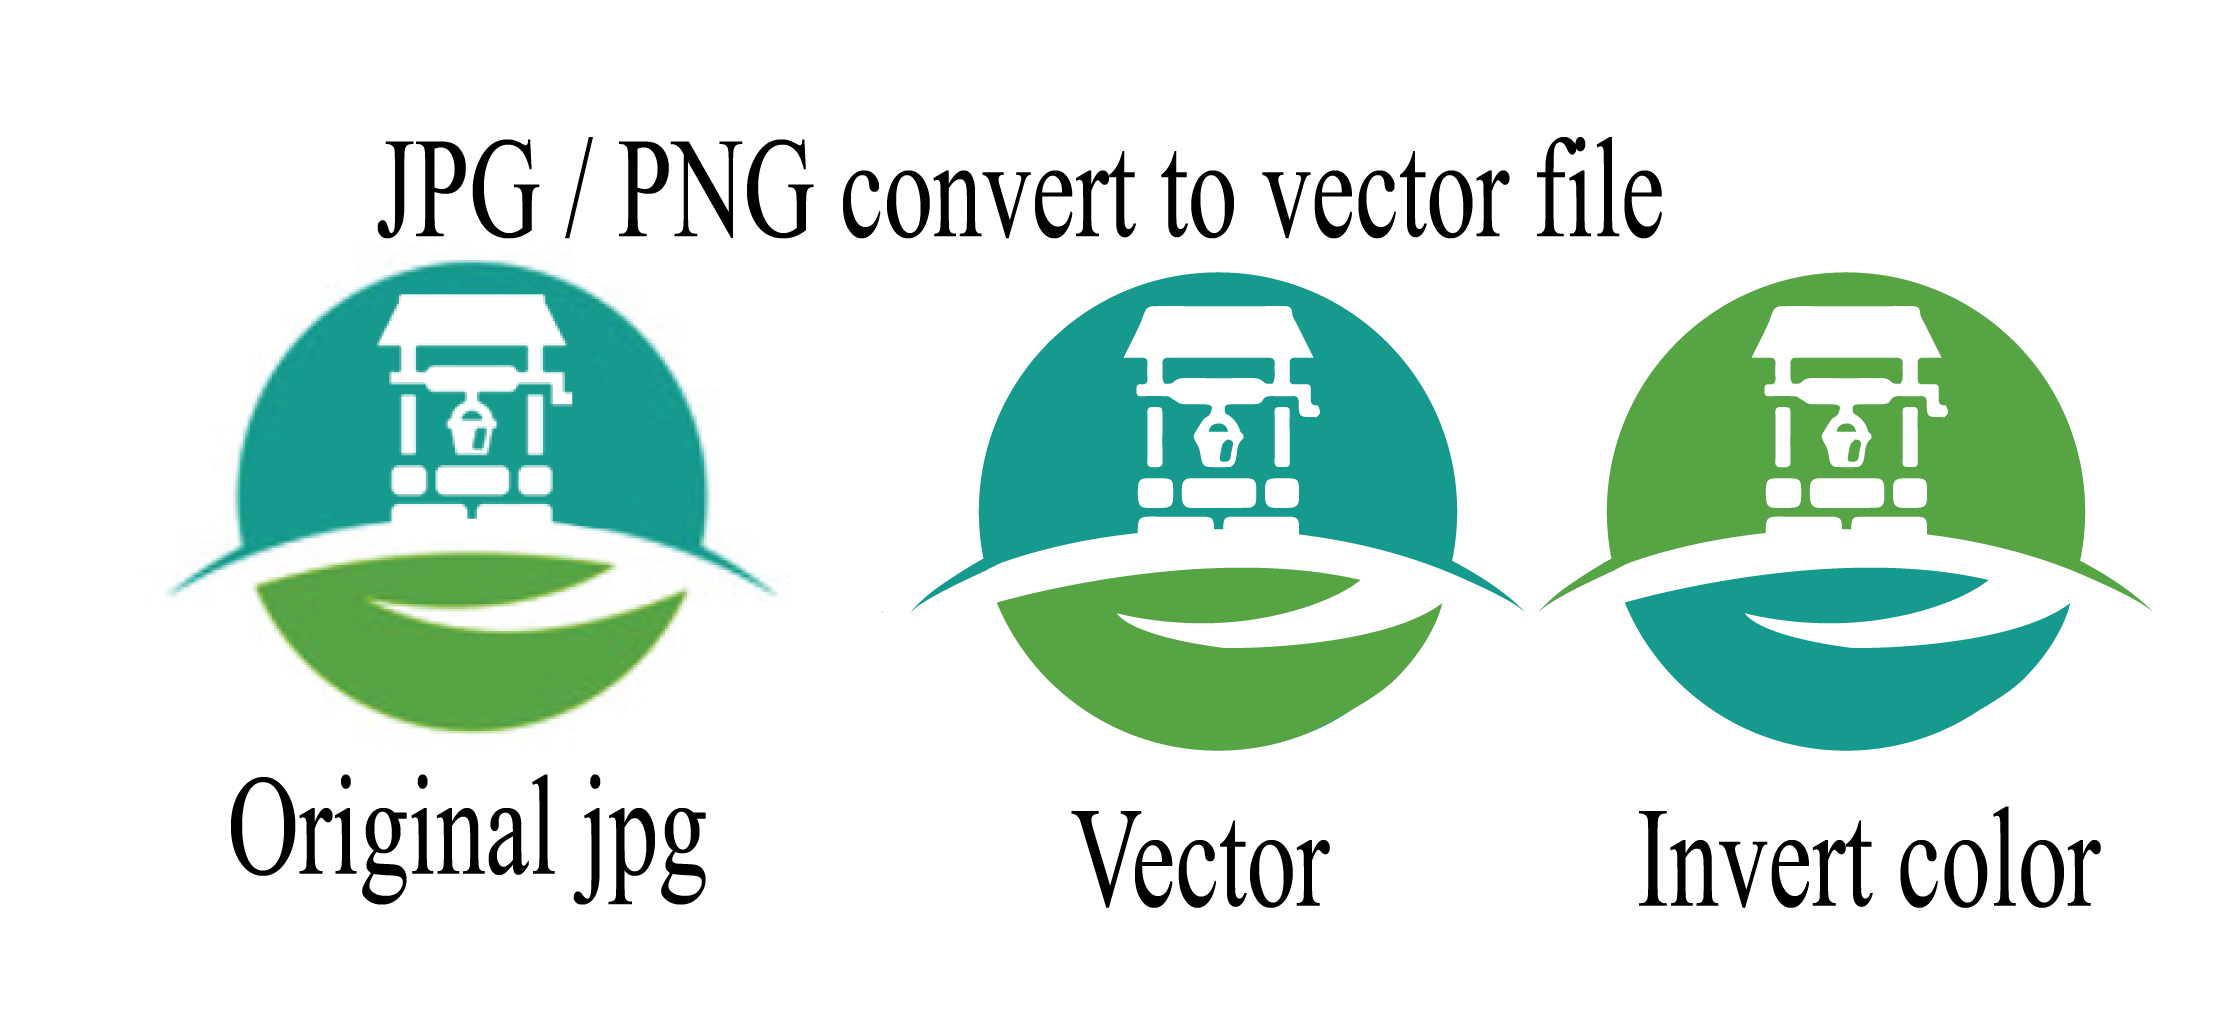 Redraw you existing logo / image as high resolution VECTOR Tracing